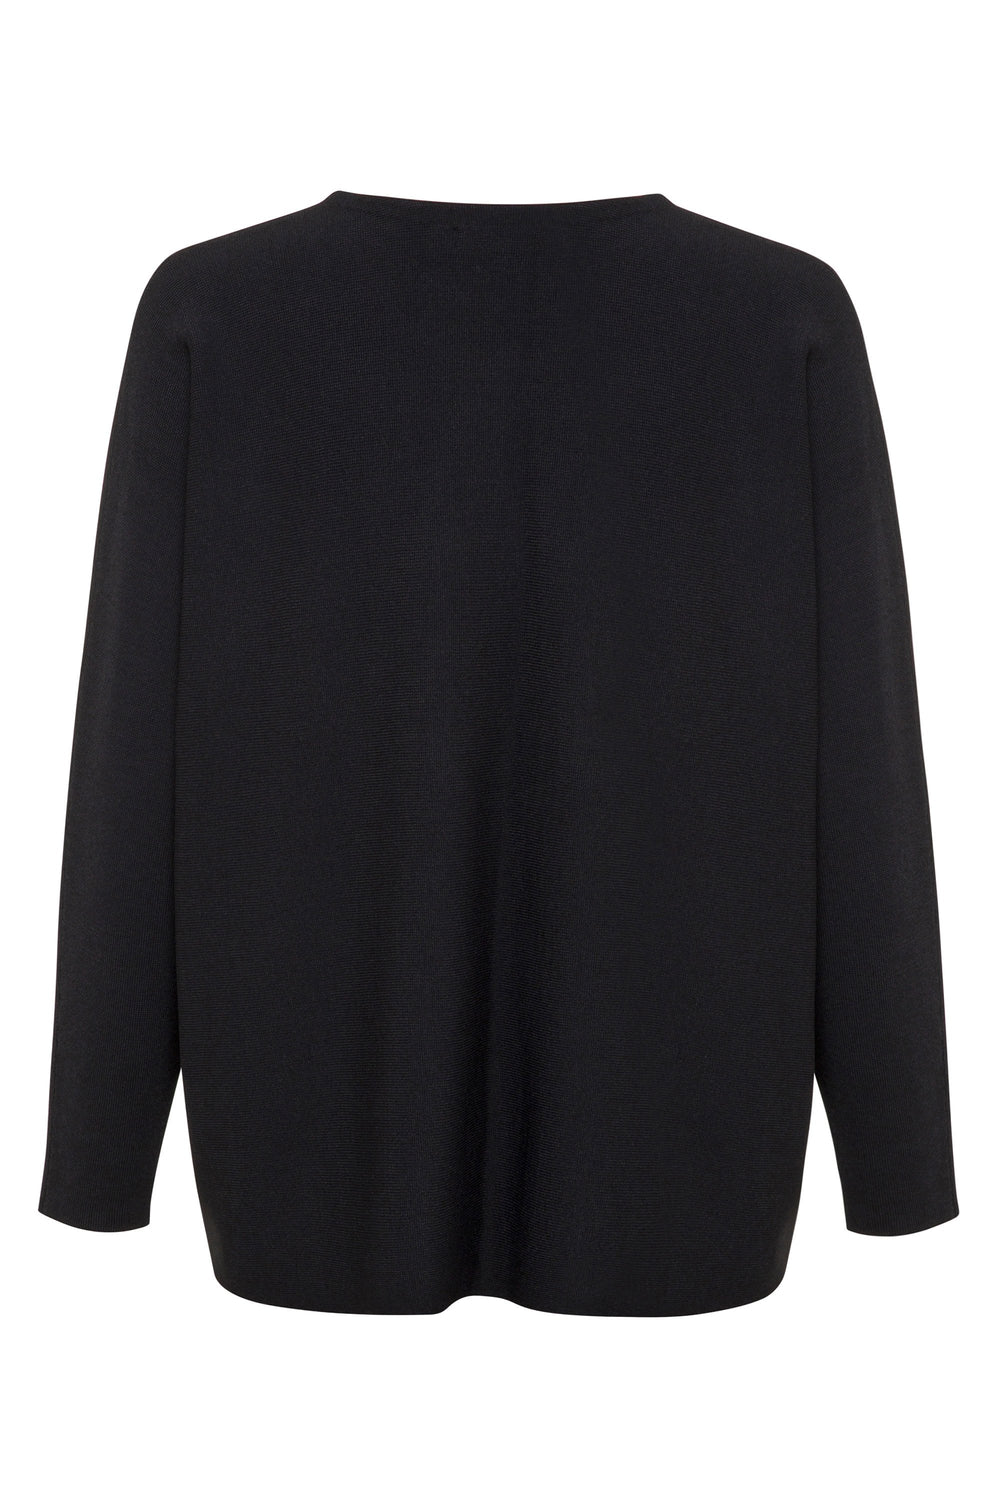 Milla Jumper In Black